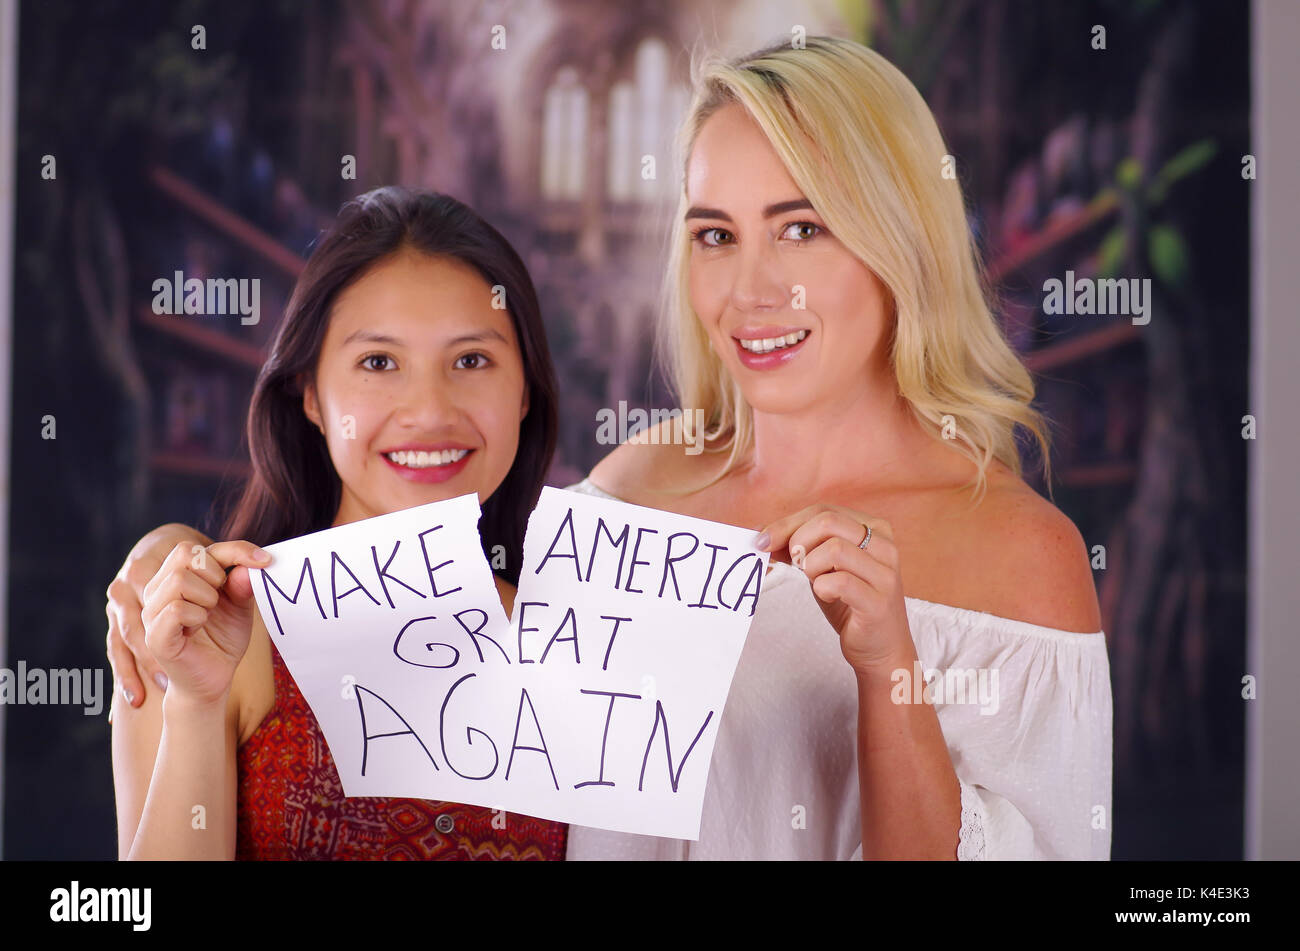 Two young women blonde and latin girl smiling and breaking racism idiosyncrasy from a american person and foreign - Stock Image